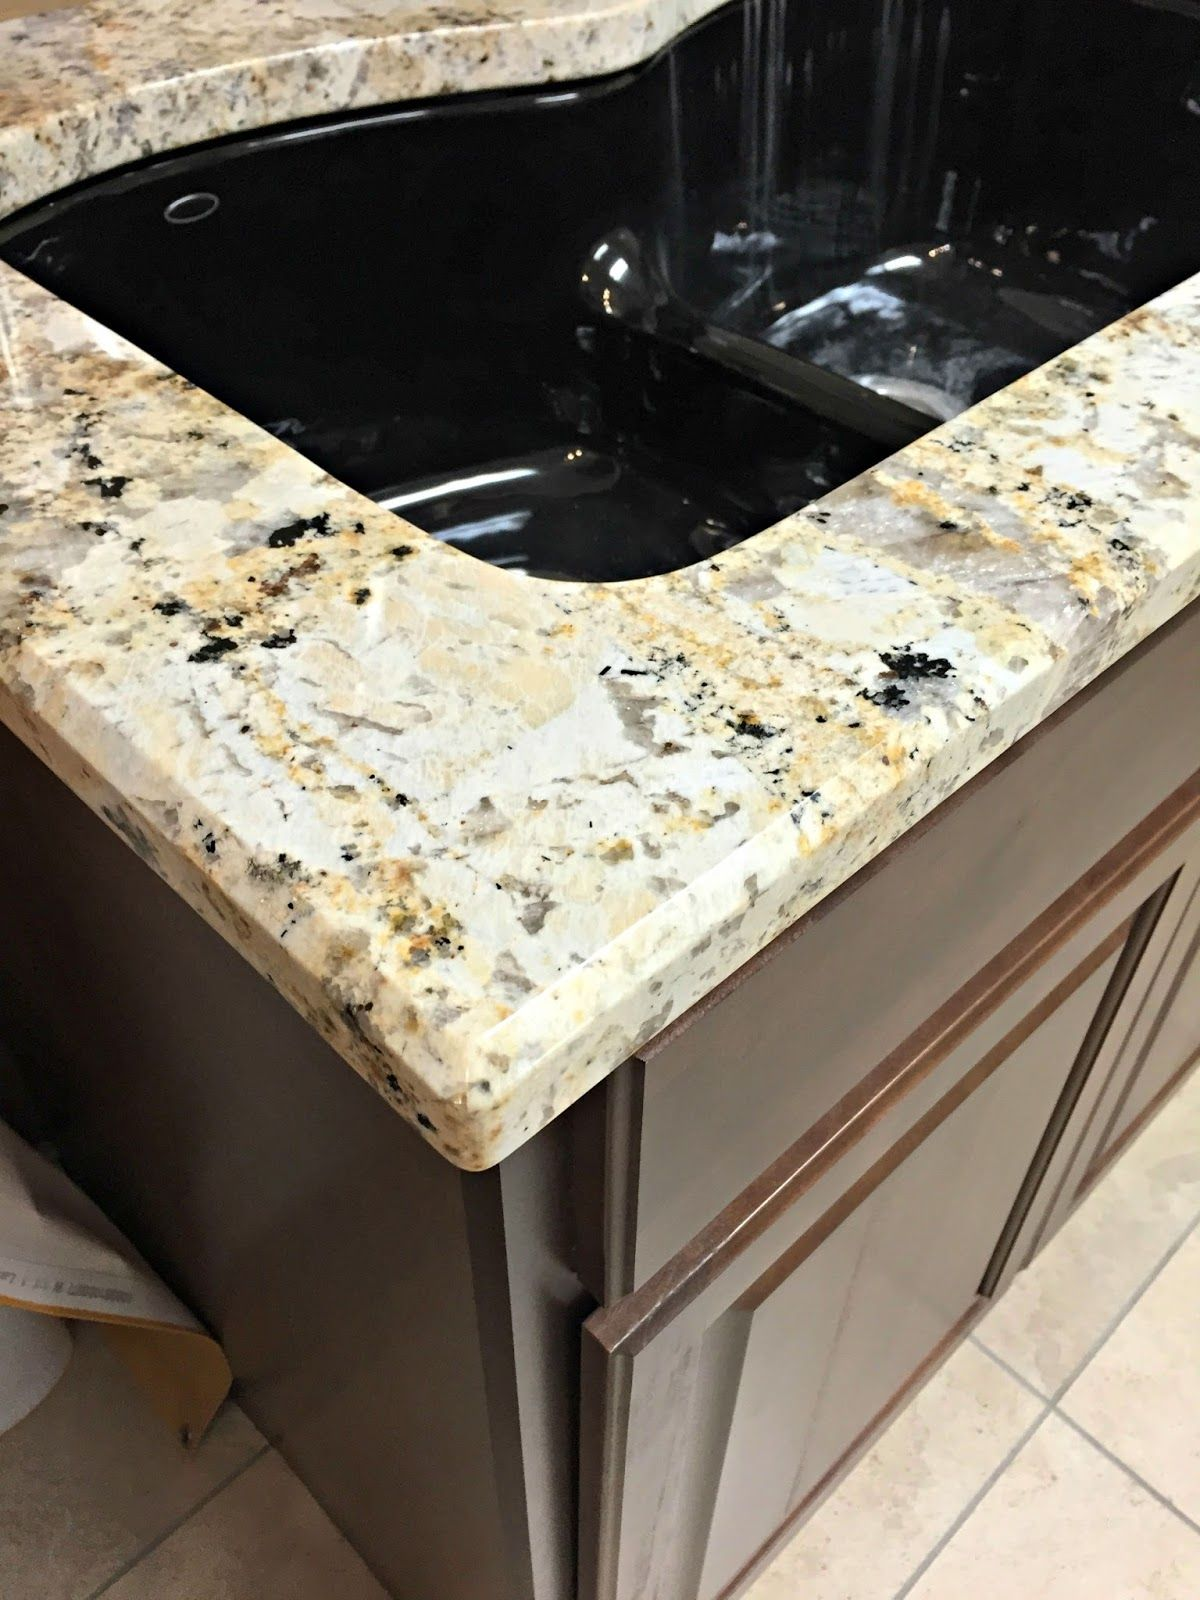 Our Beautiful River White Granite Countertops Granite Countertops White Granite Countertops Countertops